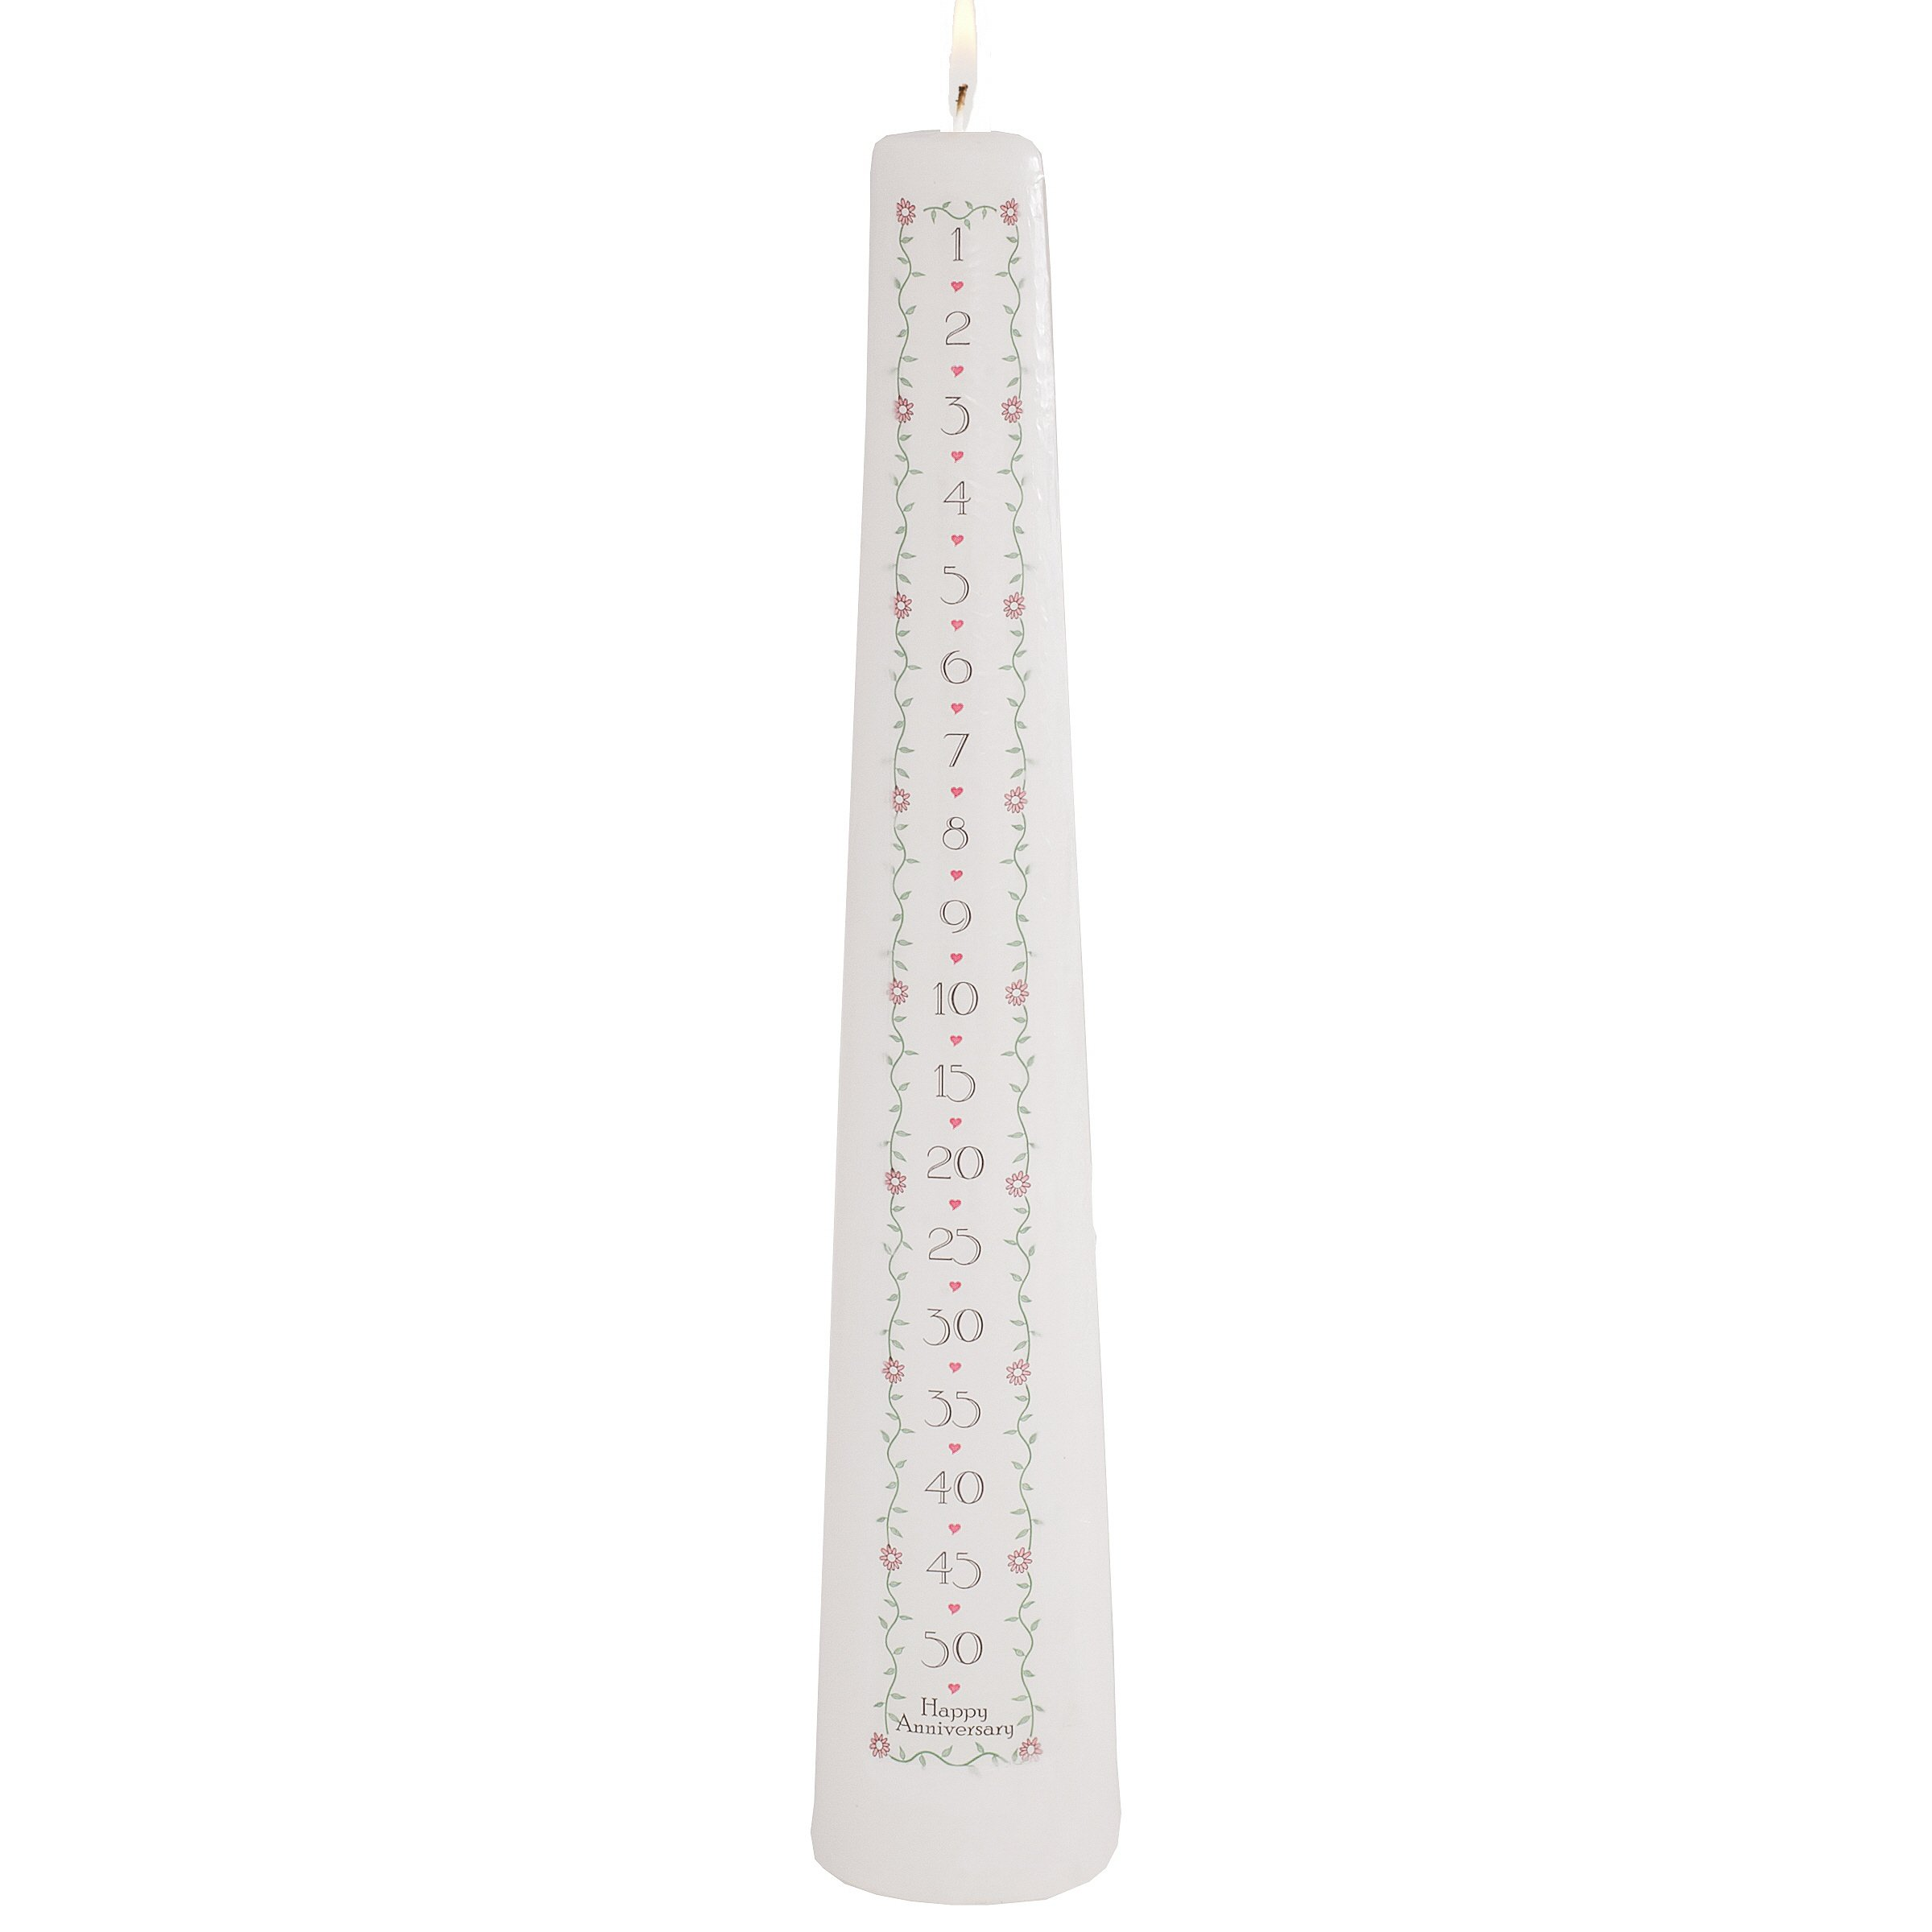 Celebration Candles Wedding Unity 15-Inch 1 to 50 Year Numbered Countdown Anniversary Candle, White